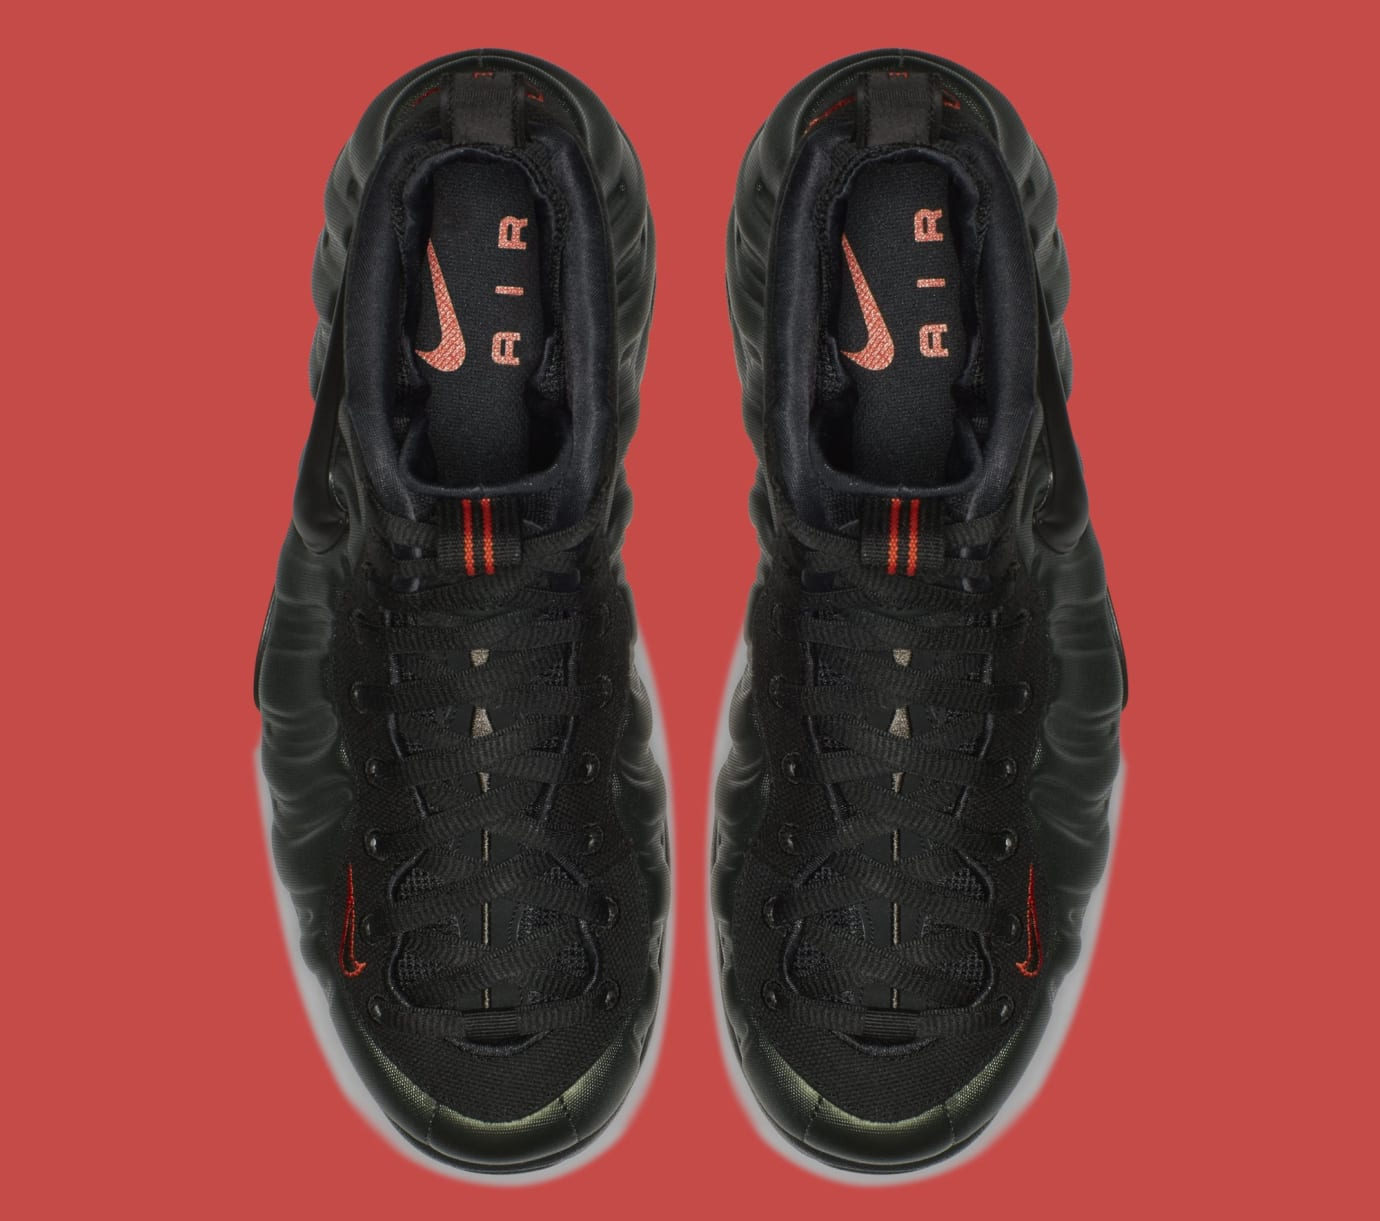 8c867687ed7 Image via Nike Nike Air Foamposite Pro  Sequoia  624041-304 (Top)